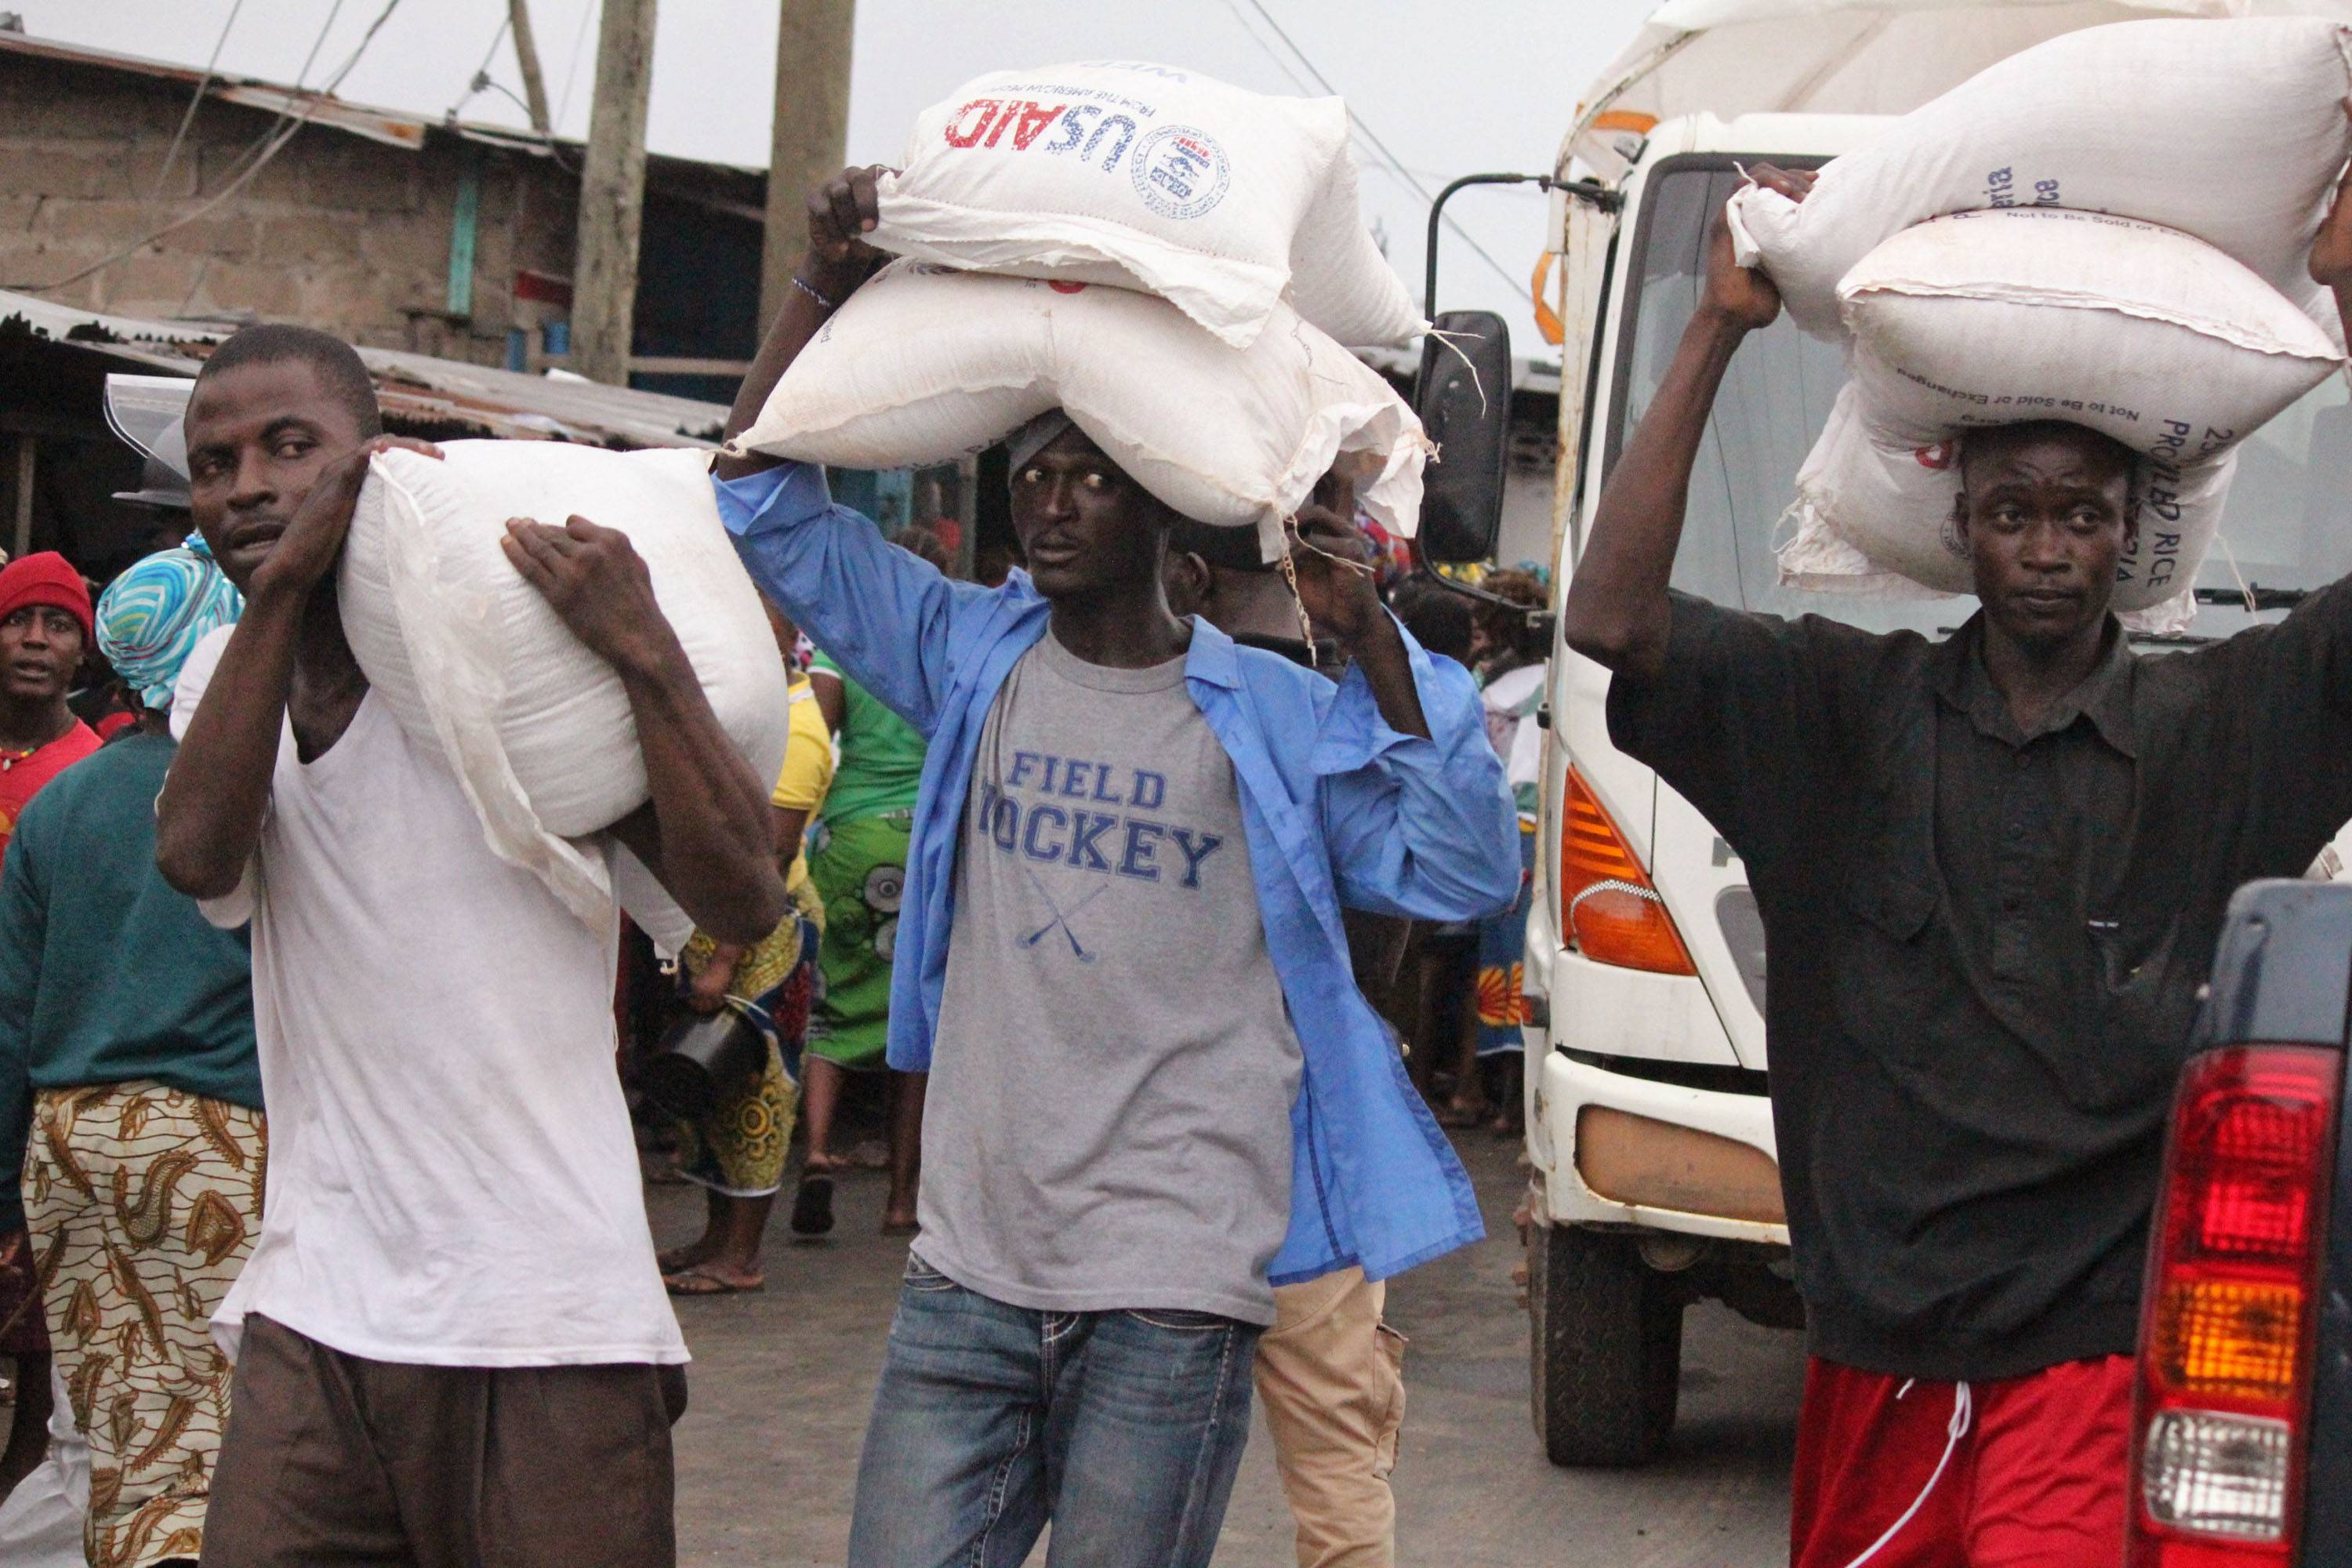 Men carry food aid that was given to them Thursday at the West Point area, one of the places where the Ebola virus has claimed lives, in Monrovia, Liberia. Calm returned Thursday to a slum in the Liberian capital that was sealed off in the government's attempt to halt the spread of Ebola, a day after clashes erupted between residents and security forces, but now the tens of thousands of residents worried about getting food.